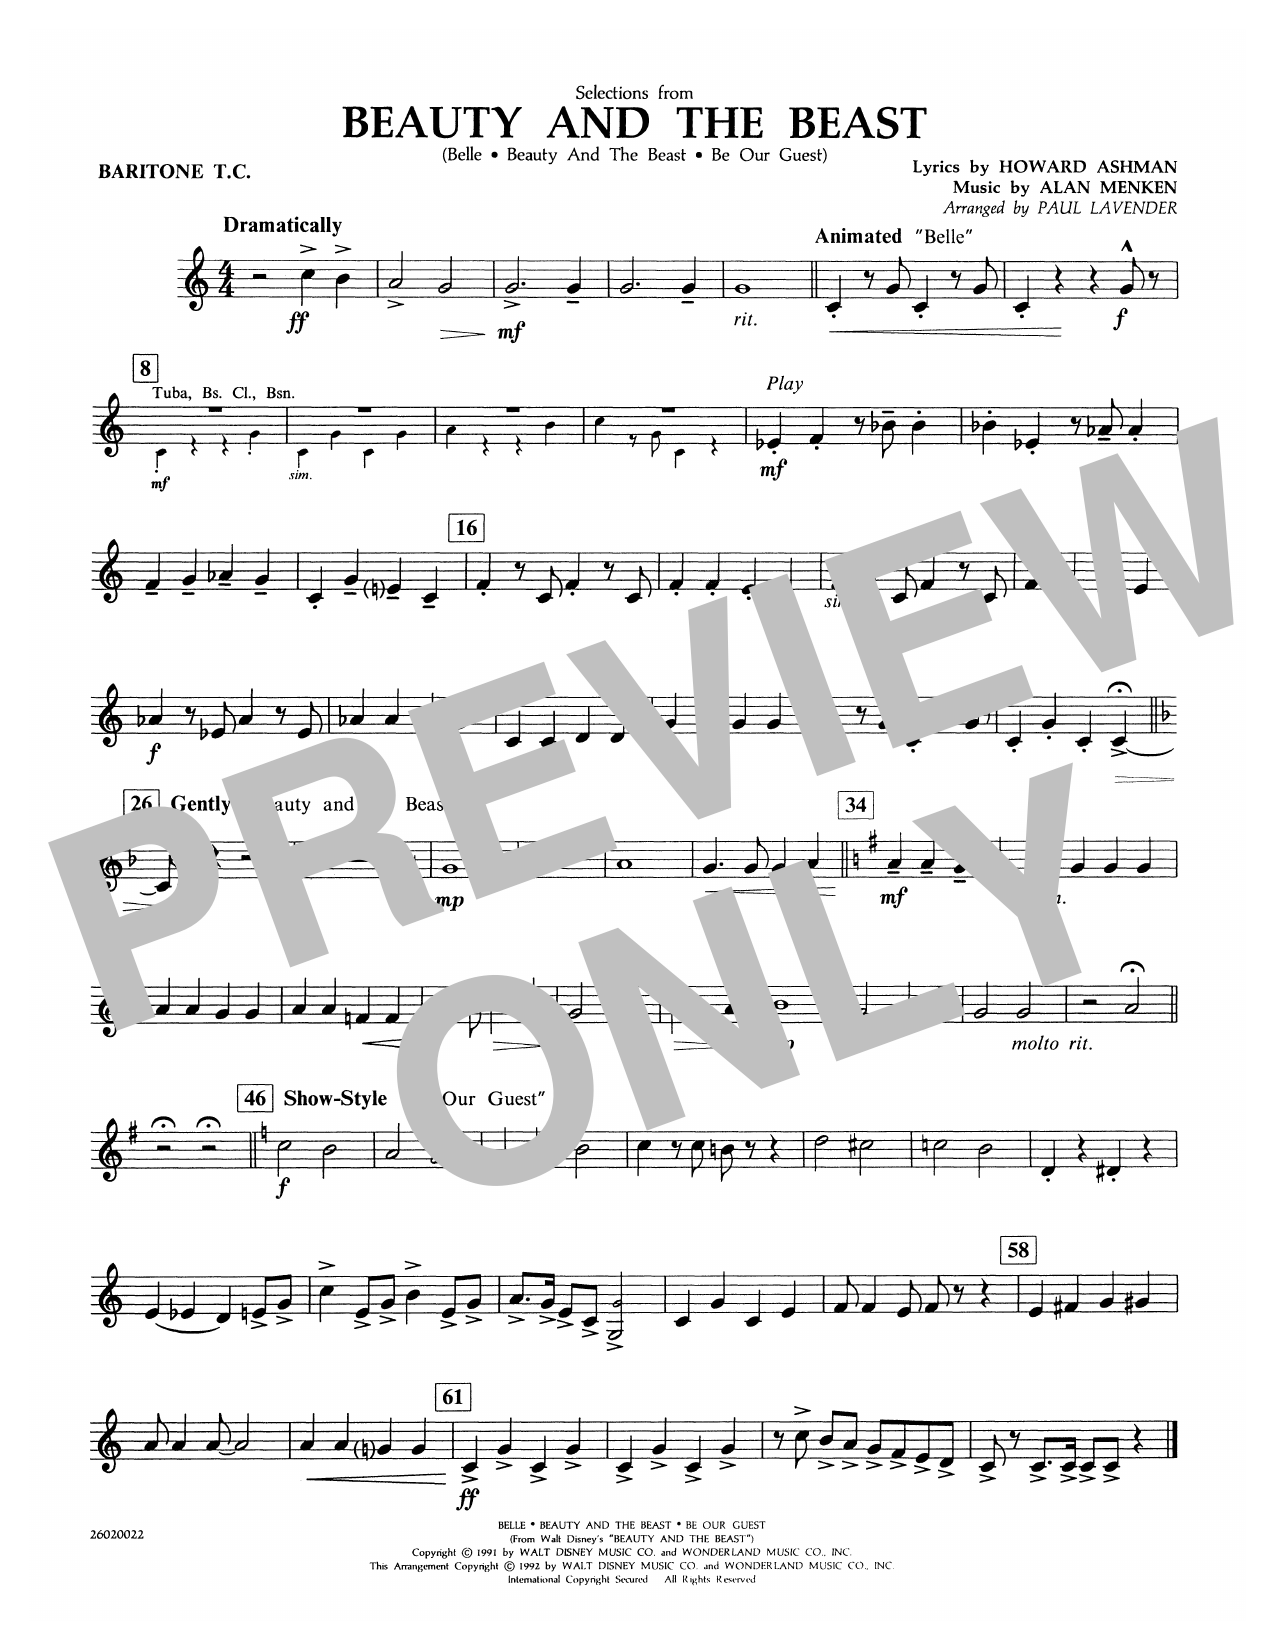 Selections from Beauty and the Beast - Baritone T.C. Sheet Music